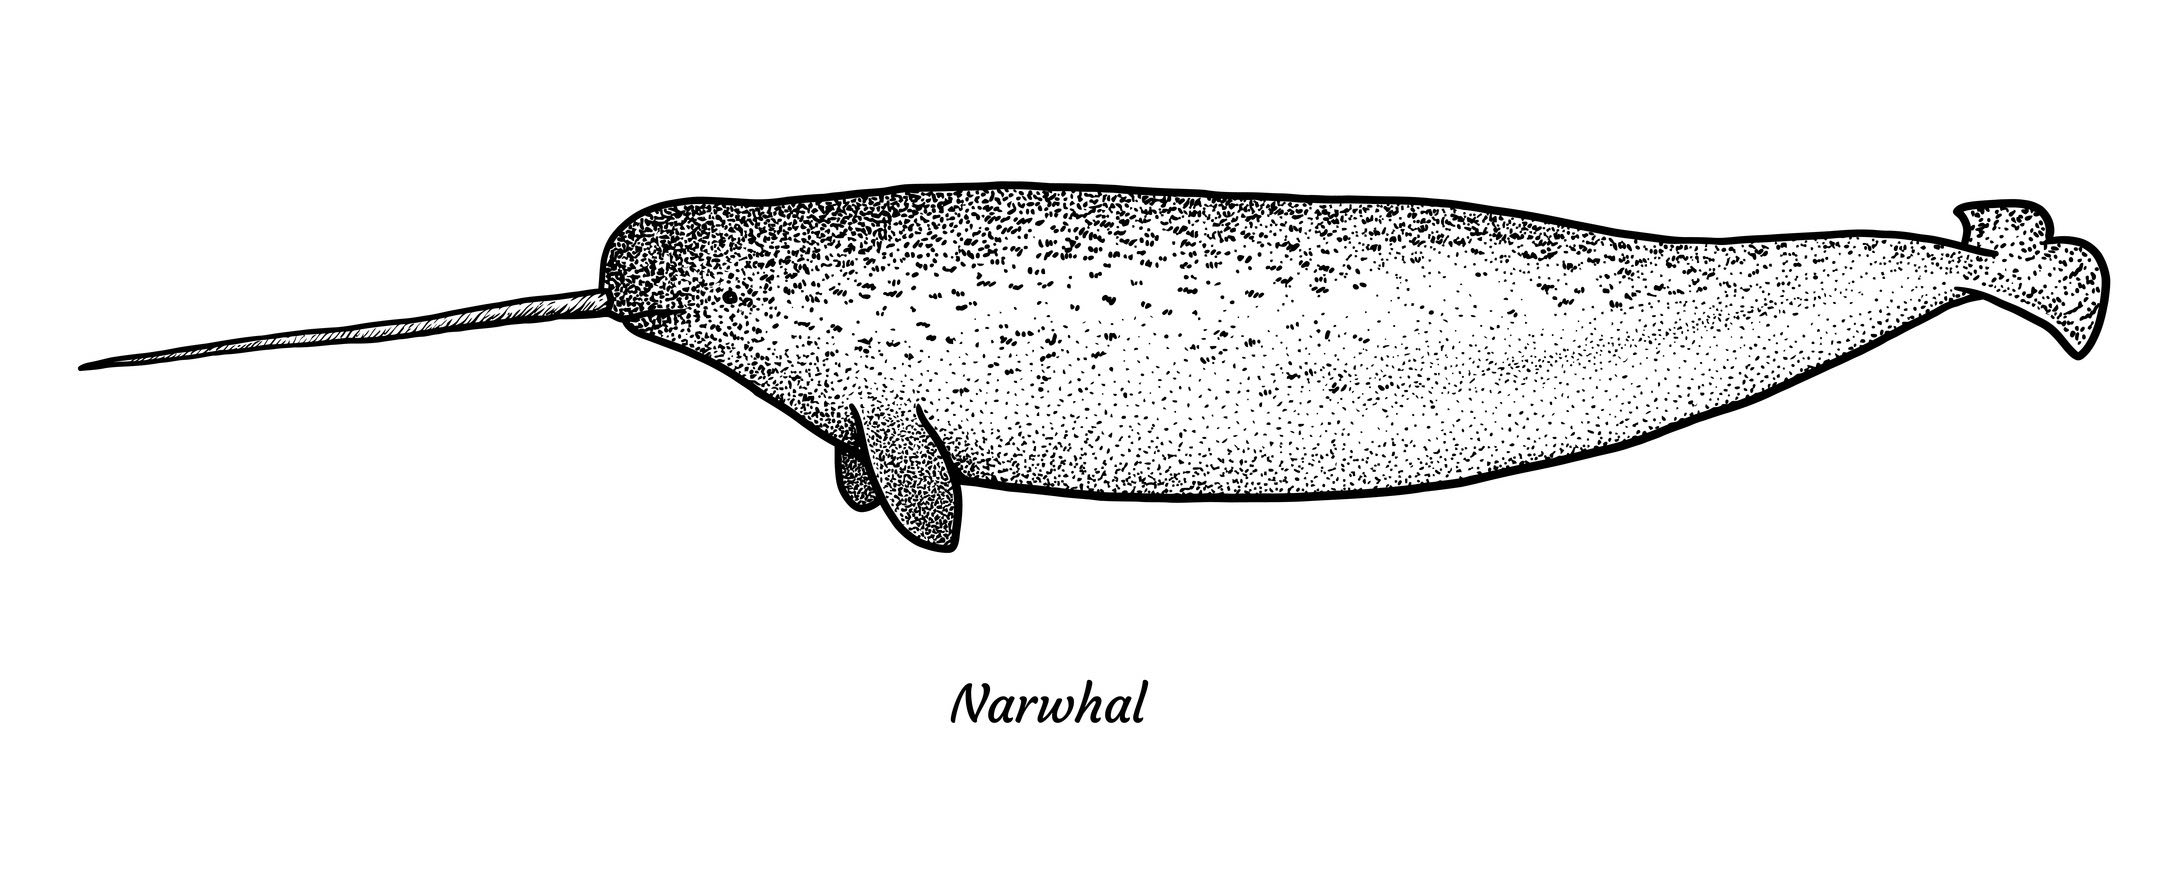 The narwhal's tusk is actually a very long and sensitive tooth.